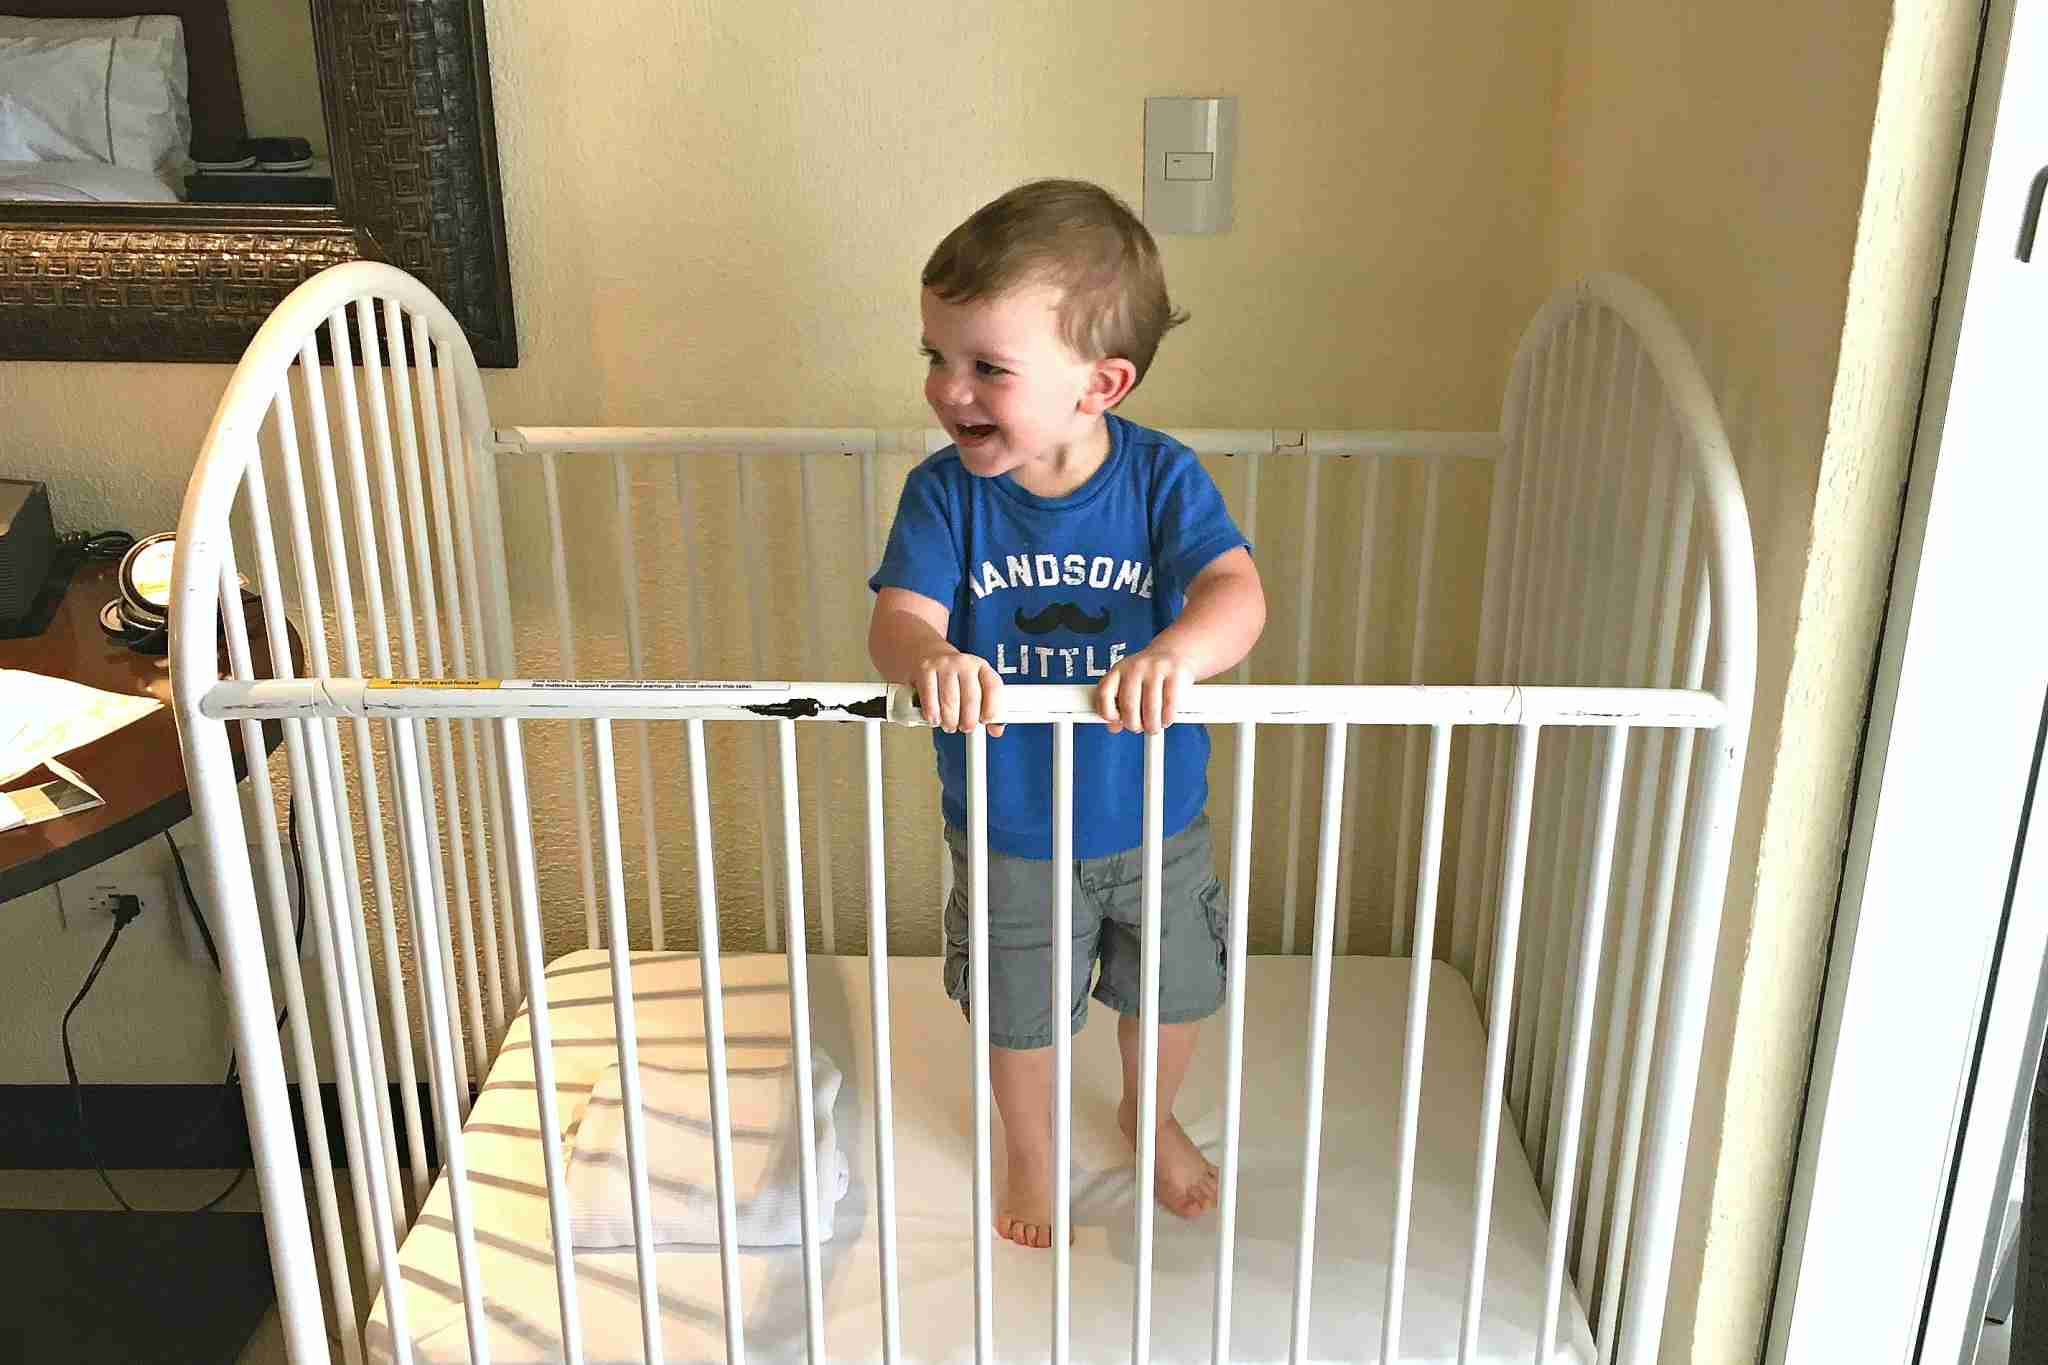 Hotel cribs may not always be up to safety standards. (Image by Leslie Harvey.)